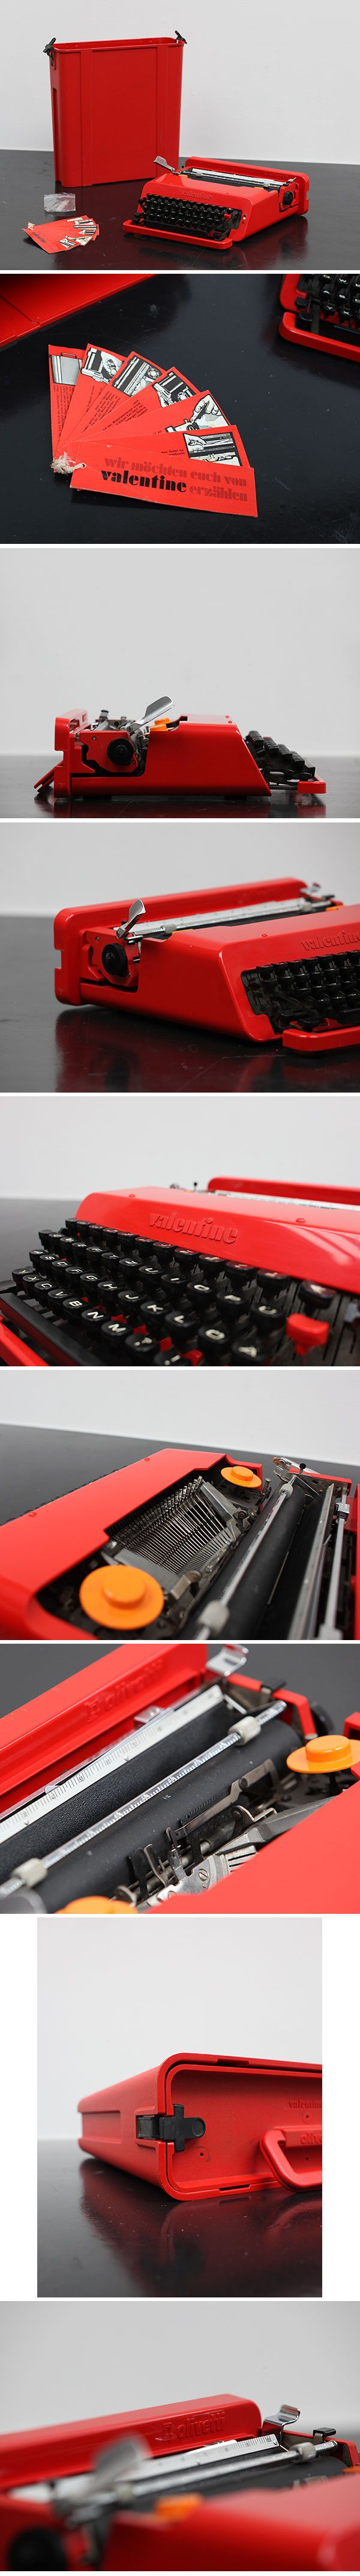 Ettore Sottsass Valentine typewriter for Olivetti 1969     Complete and well kept Ettore Sottsass. Valentine typewriter for Olivetti, 1969. ABS plastic and other materials, 11.7 x 34.3 x 35.2 cm. 'Ettore Sottsass: Work in Progress', Design Museum, London. City Furniture.be. online